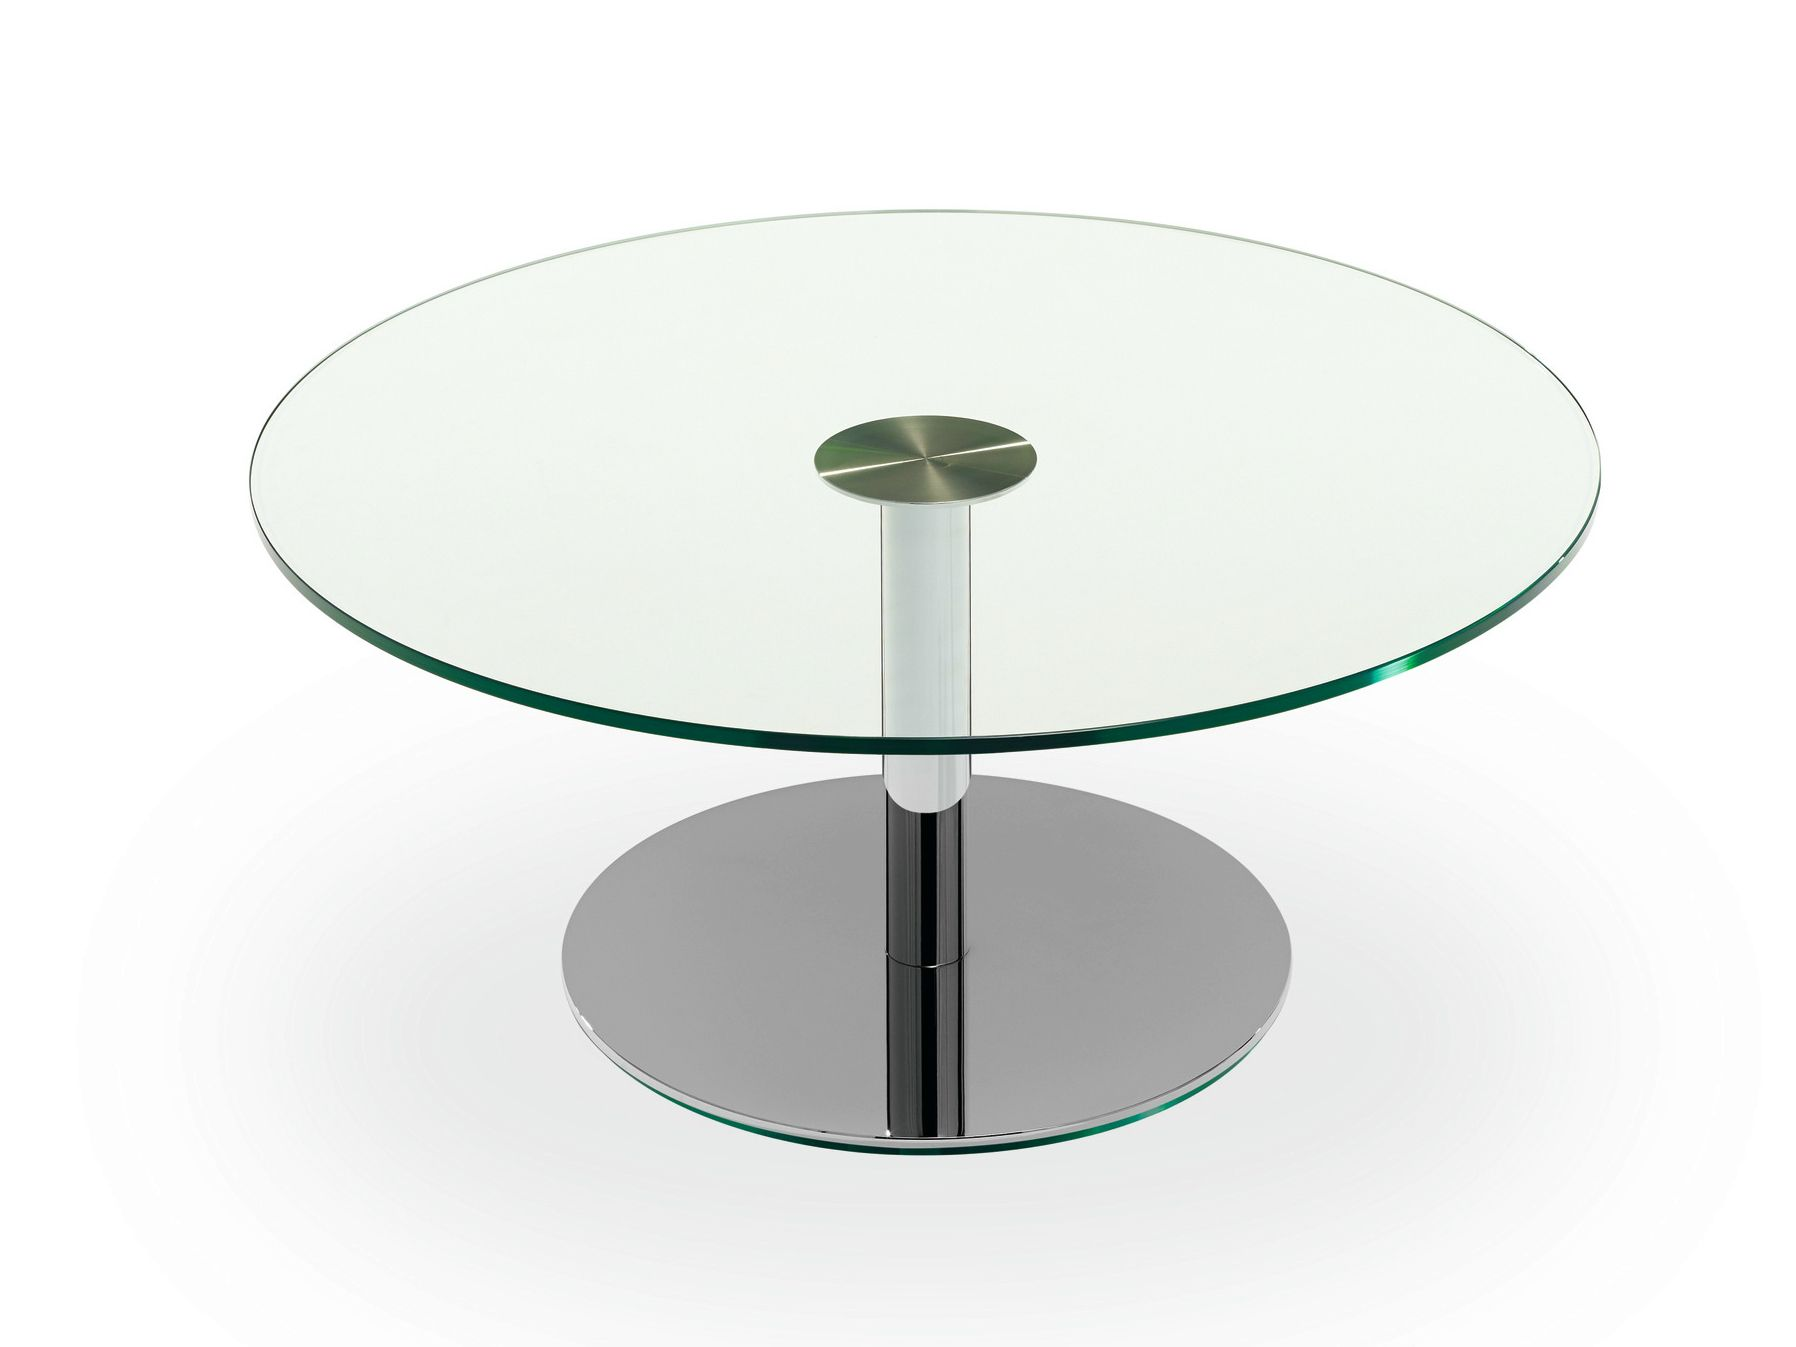 Sketch of Small Glass Coffee Tables Furniture